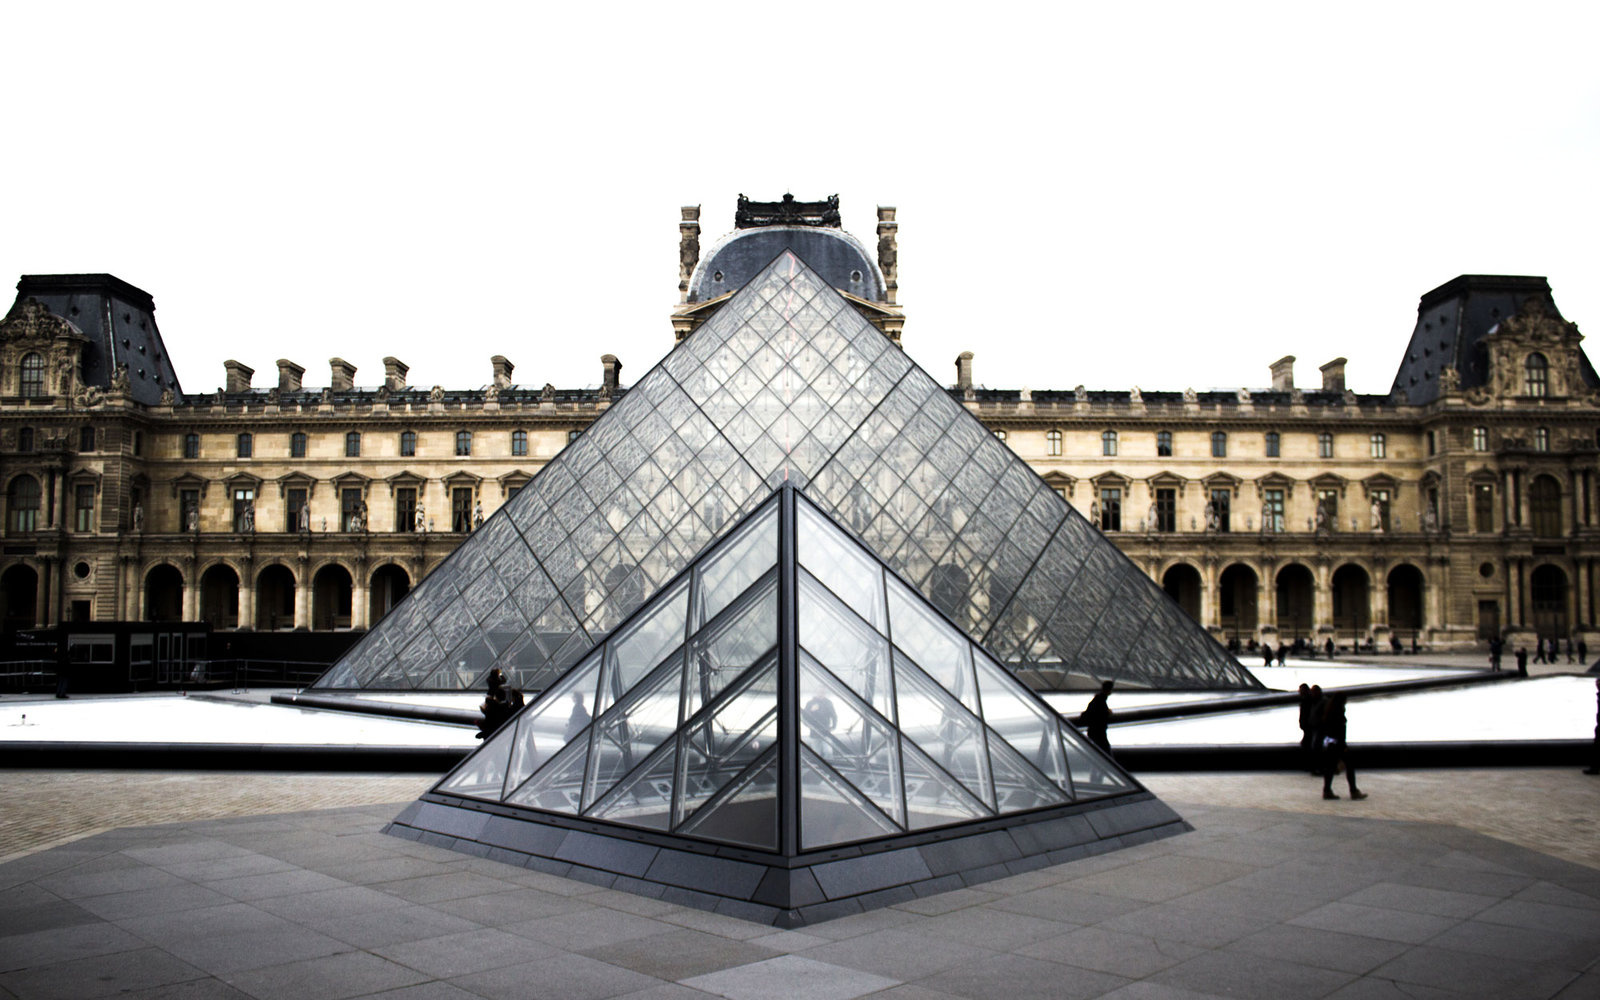 10 Secrets of the Louvre, The World's Most Visited Museum